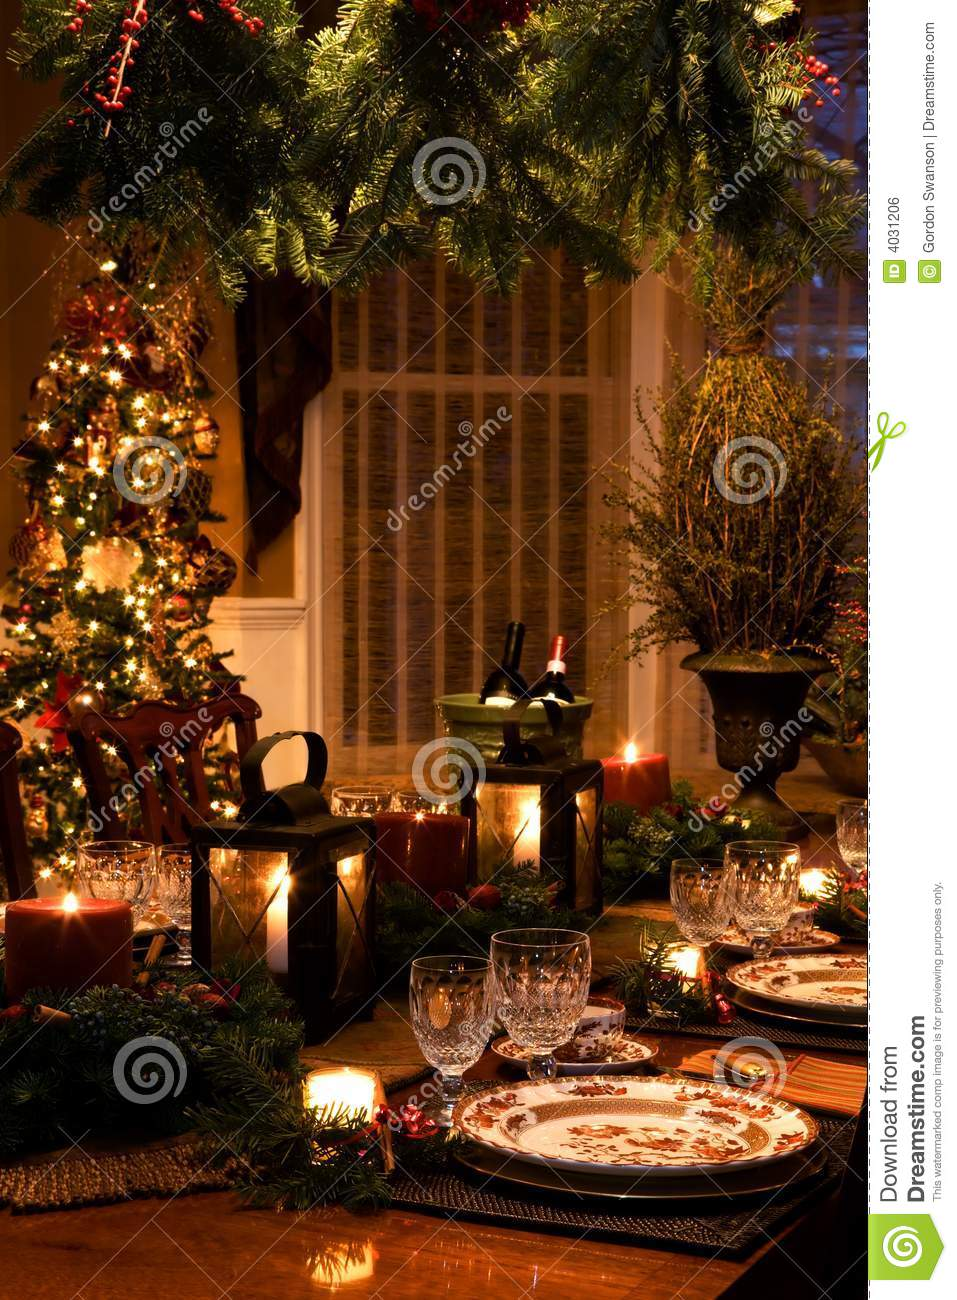 Christmas Interiors Stock Photo Image Of Decorate Dinner